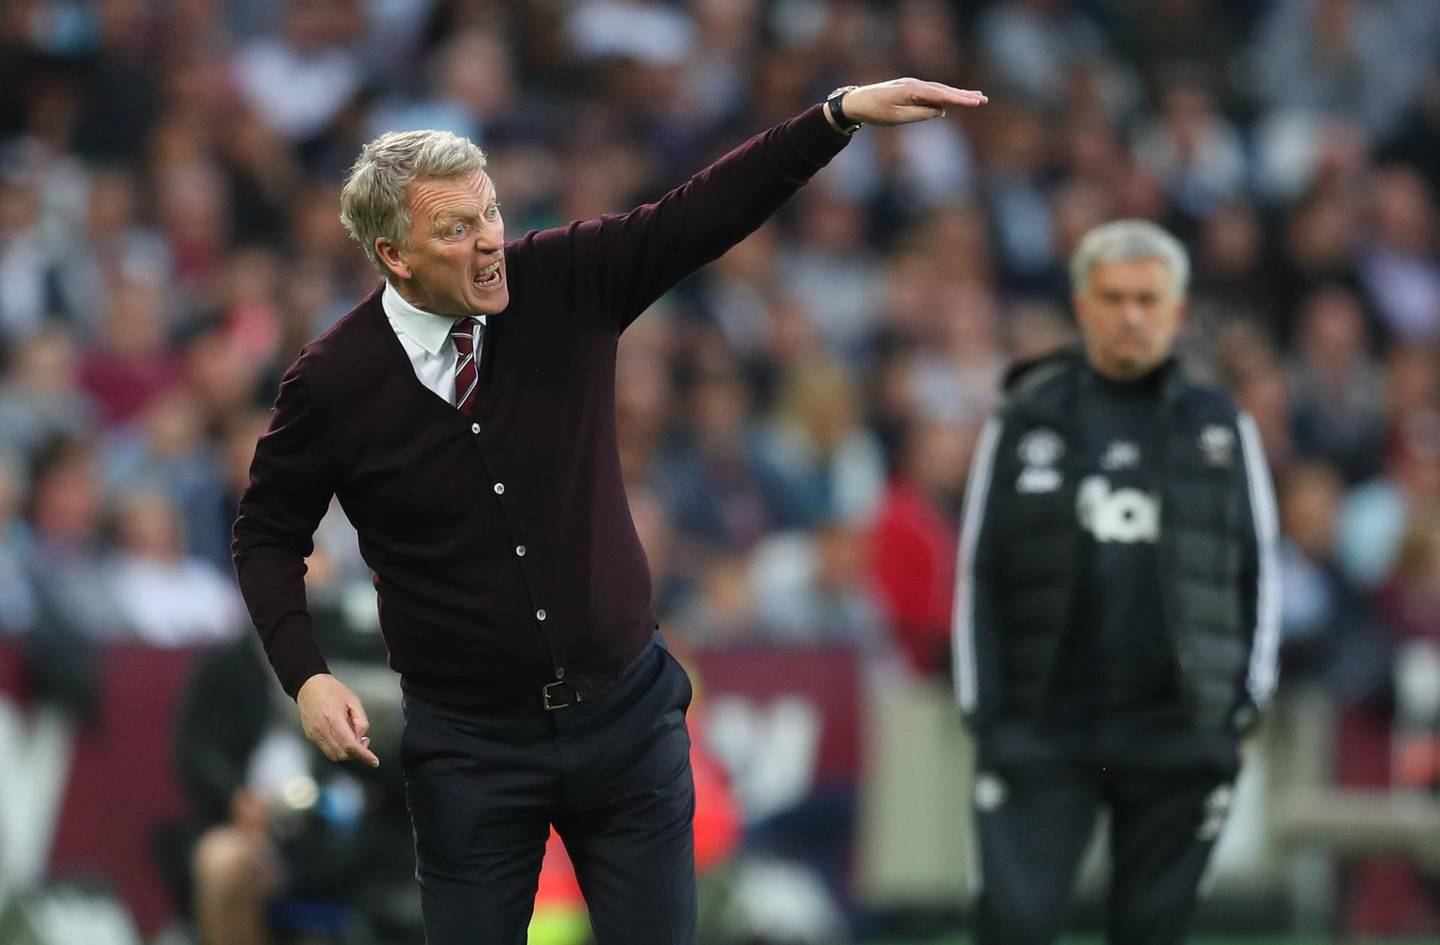 LONDON, ENGLAND - MAY 10: David Moyes manager of West Ham United shouts during the Premier League match between West Ham United and Manchester United at London Stadium on May 10, 2018 in London, England. (Photo by Catherine Ivill/Getty Images)